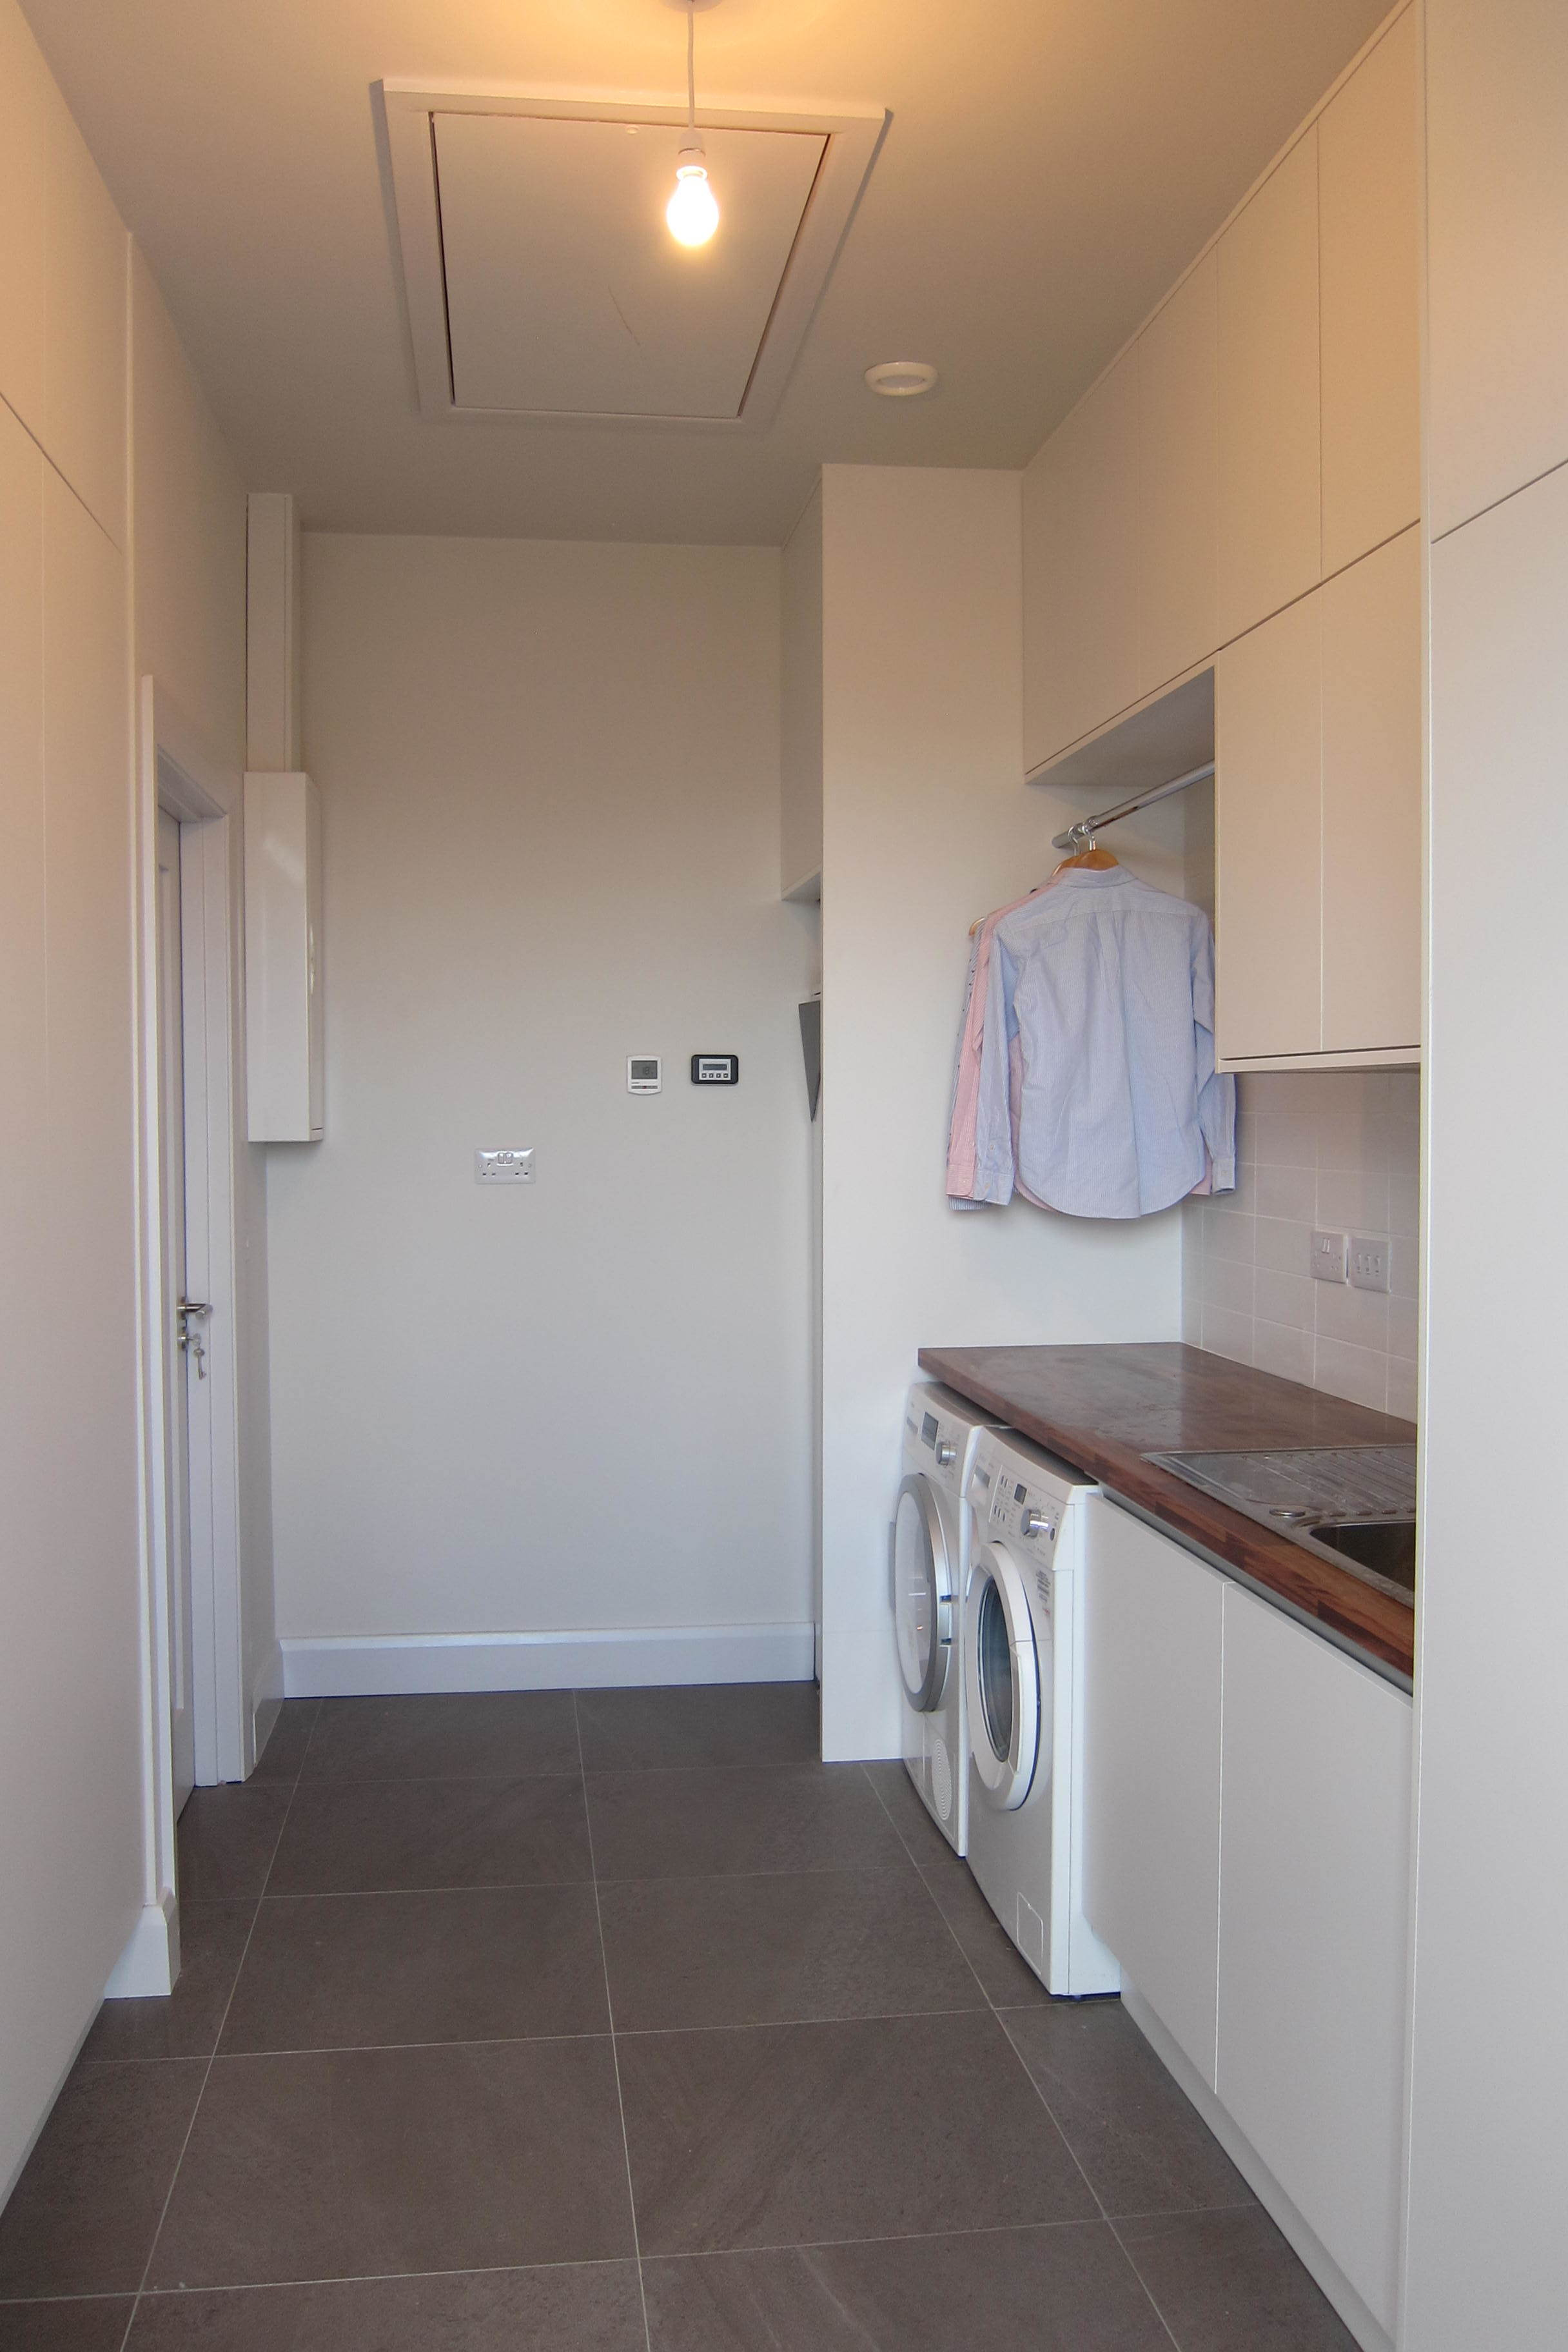 TX3 RTI10 Moate AFTER Utility Room .JPG